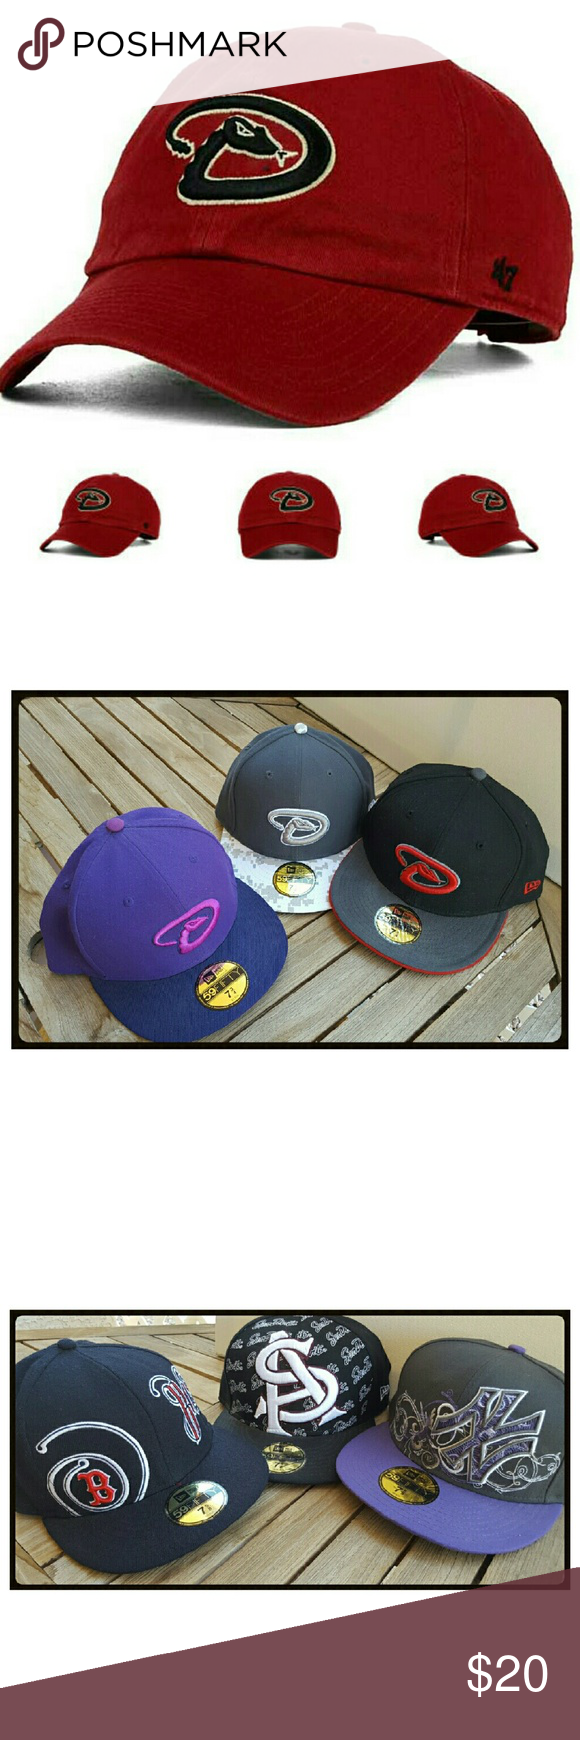 da75b3febbf 59FIFTY® Fitted caps. All lids clean. 20. Each These 59FIFTY® Fitted